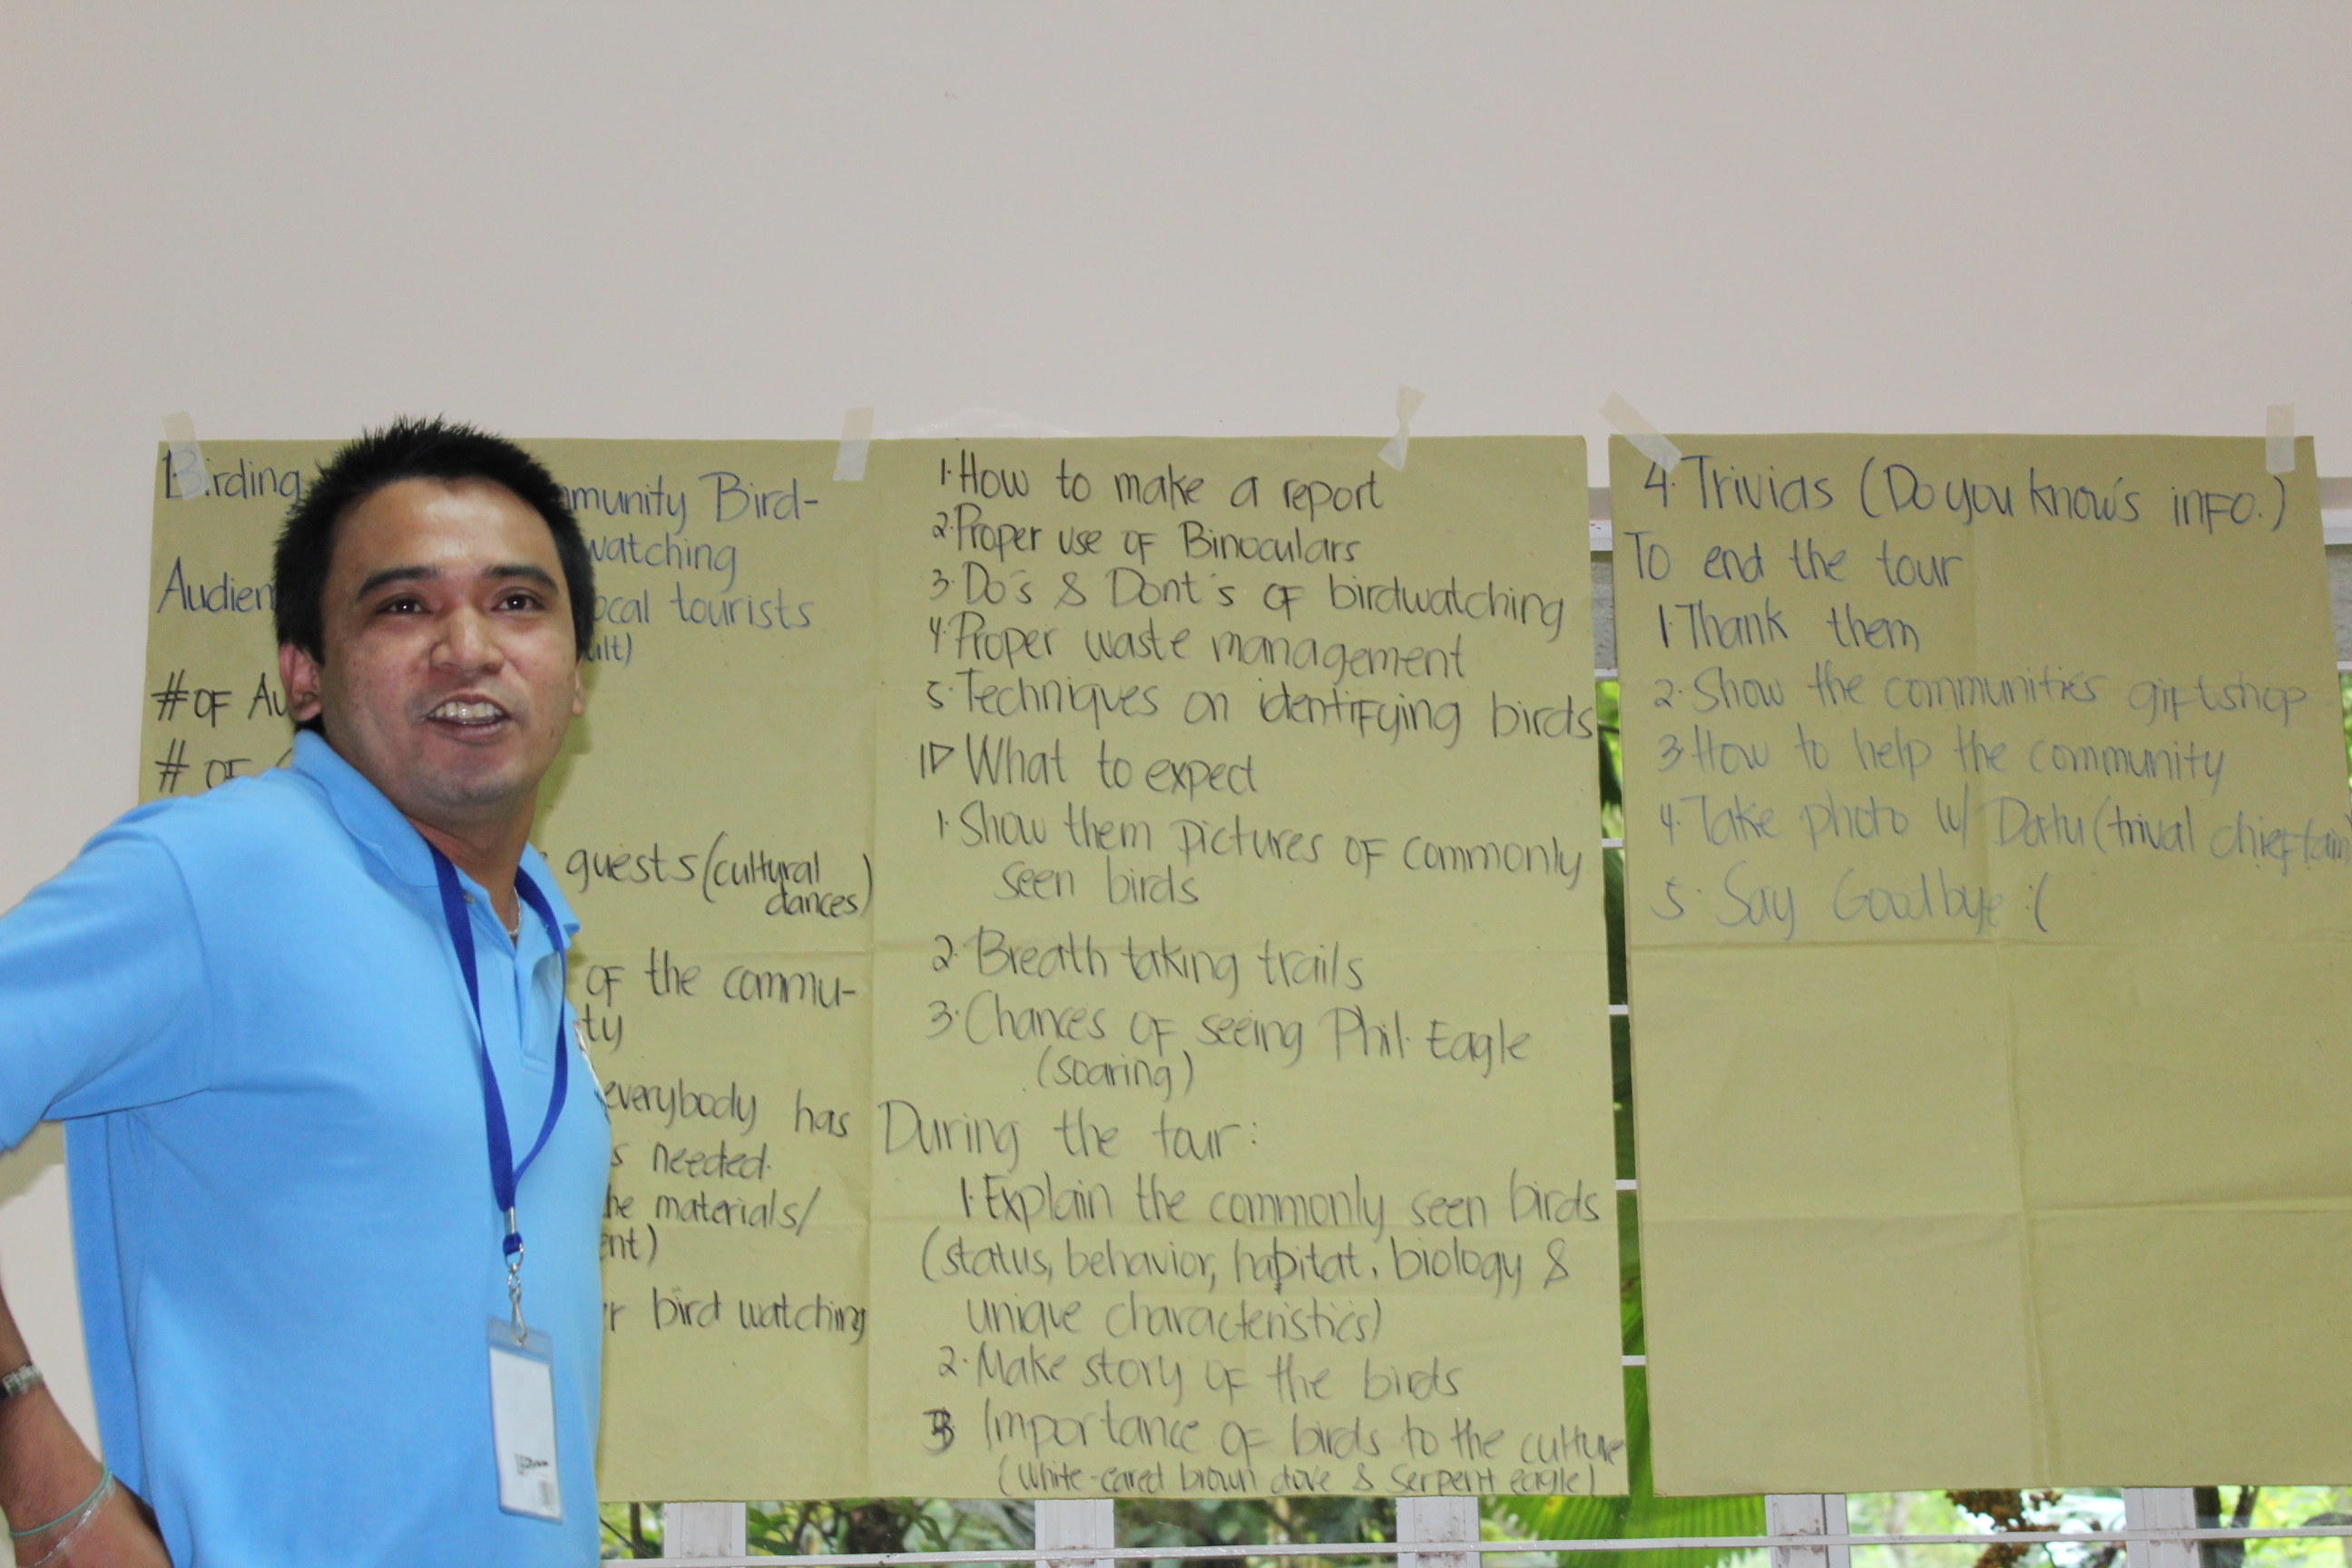 PEF Field biologist Joshua presenting his group's output for a community-based birdwalk. Photo by Trinket Constantino.